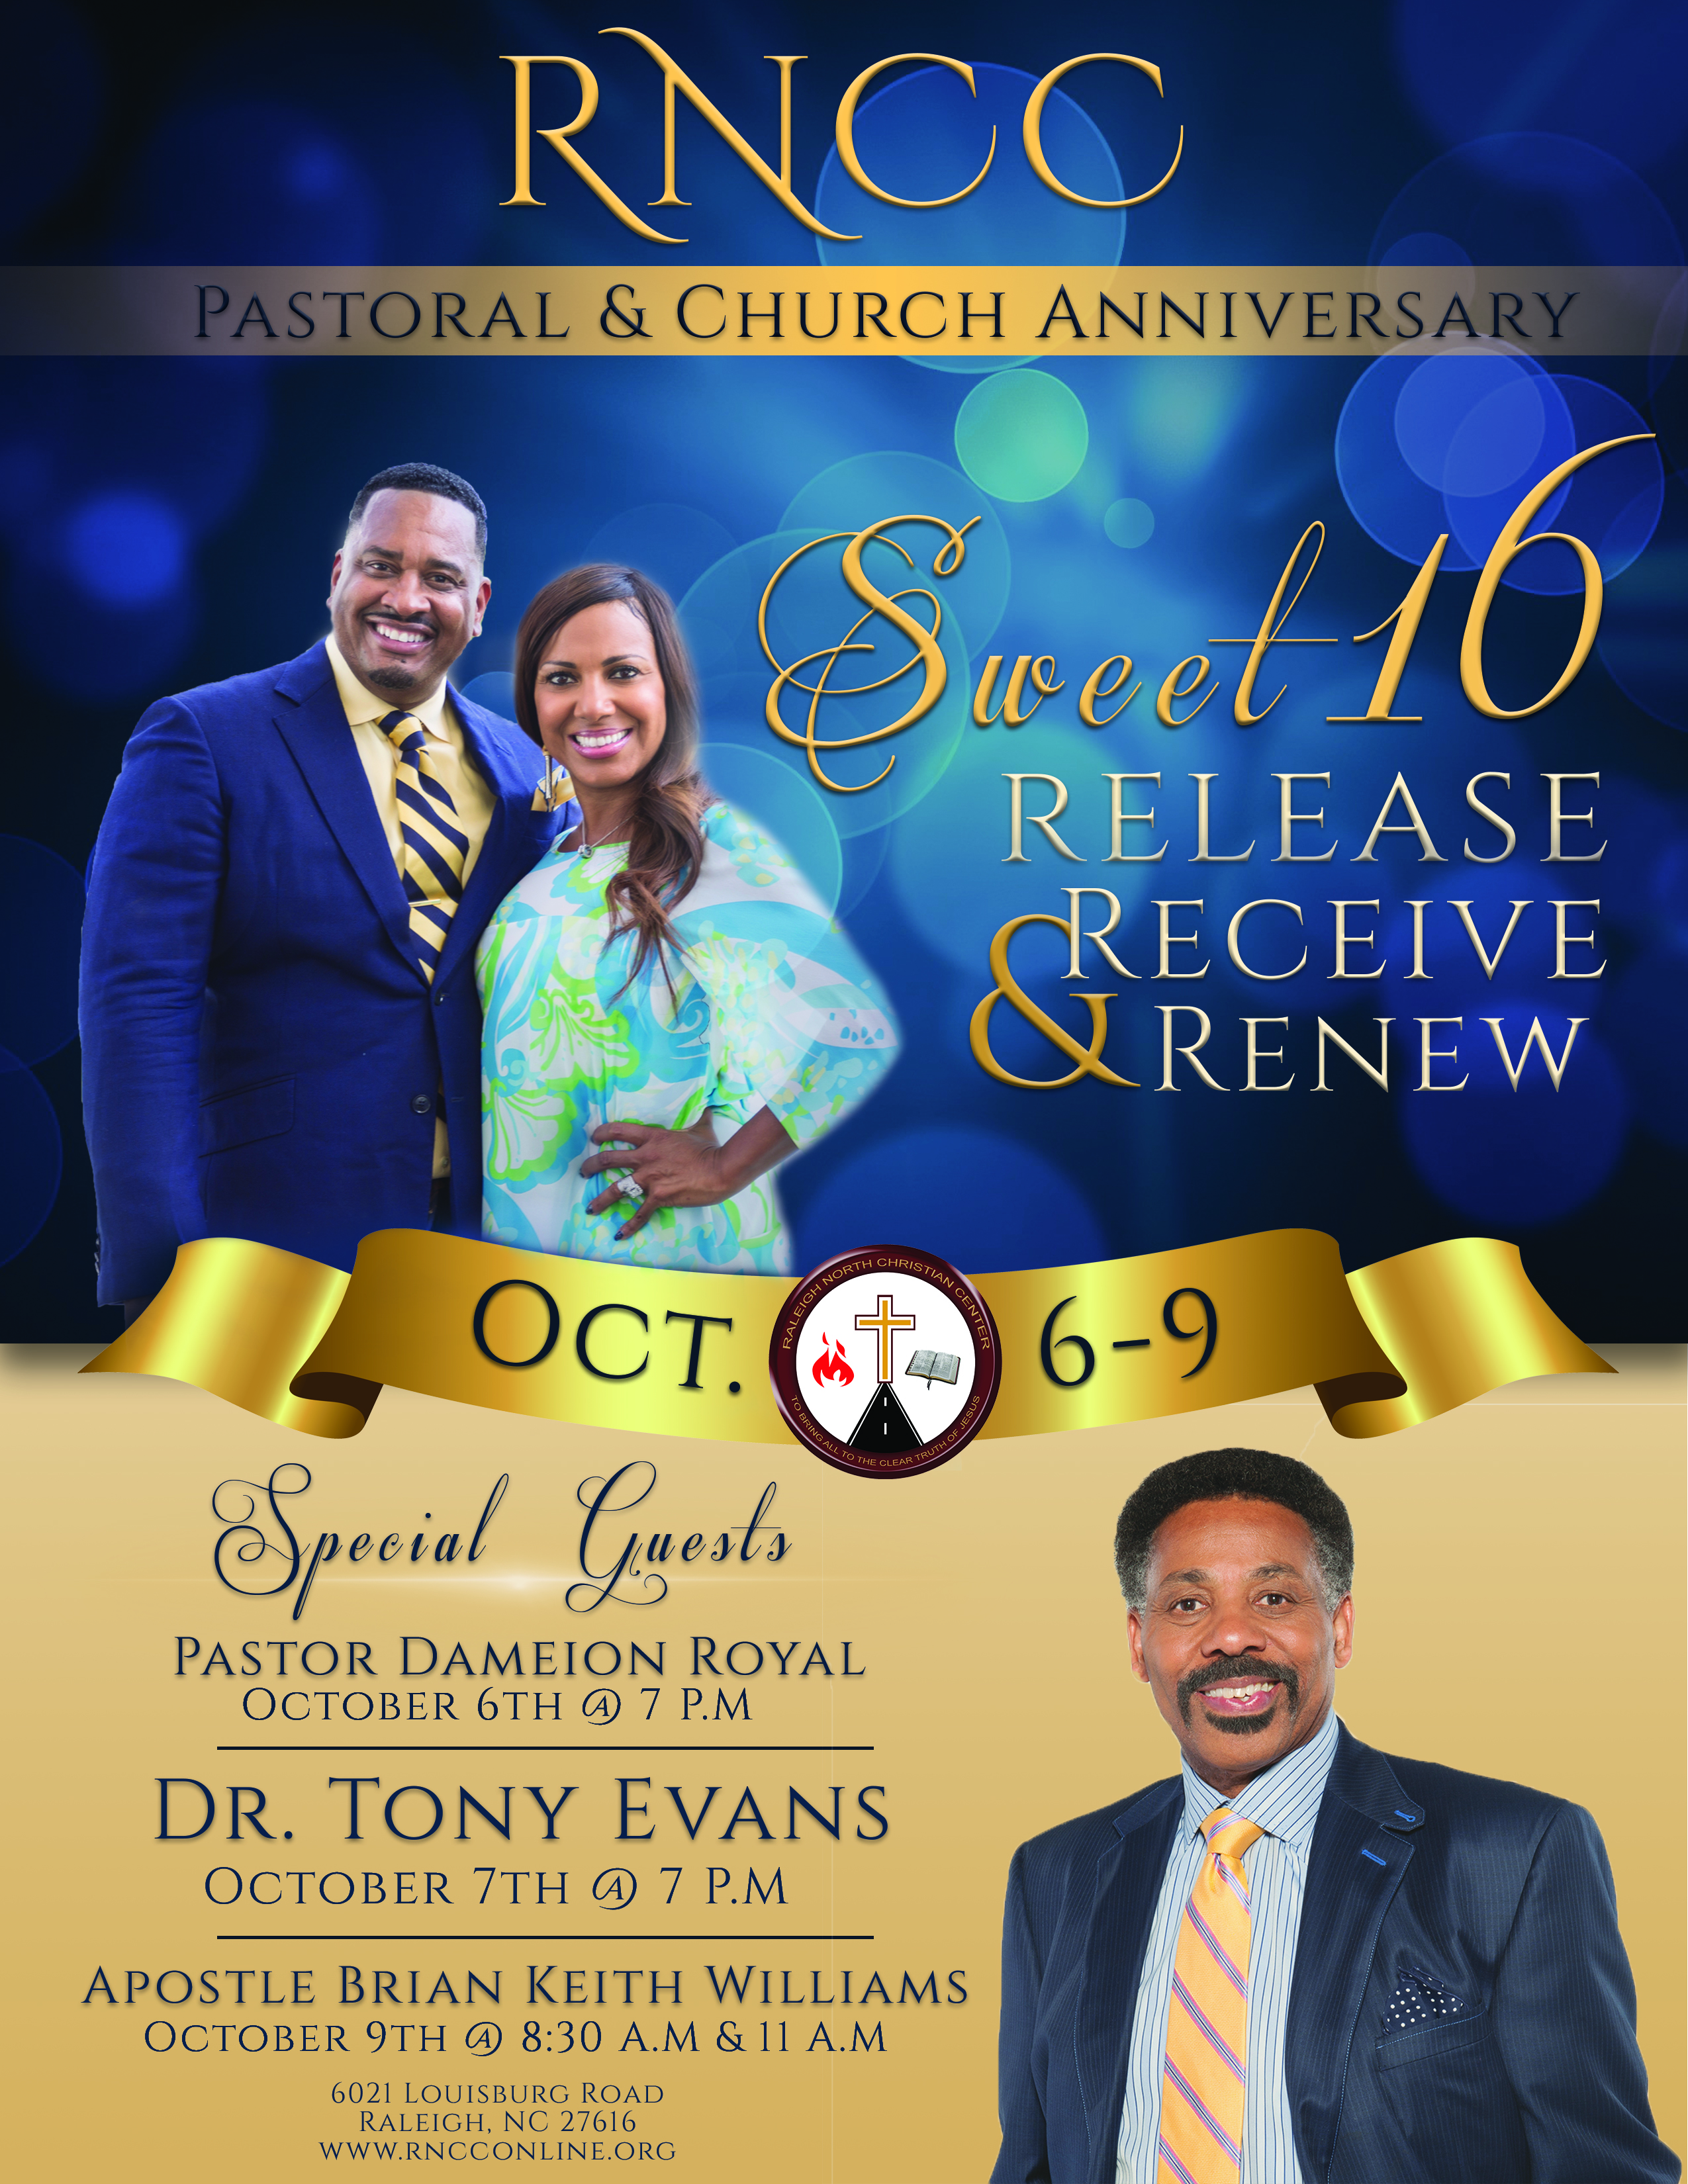 Sweet 16 Pastoral and Church Anniversary with special guest Pastor Dameion Royal